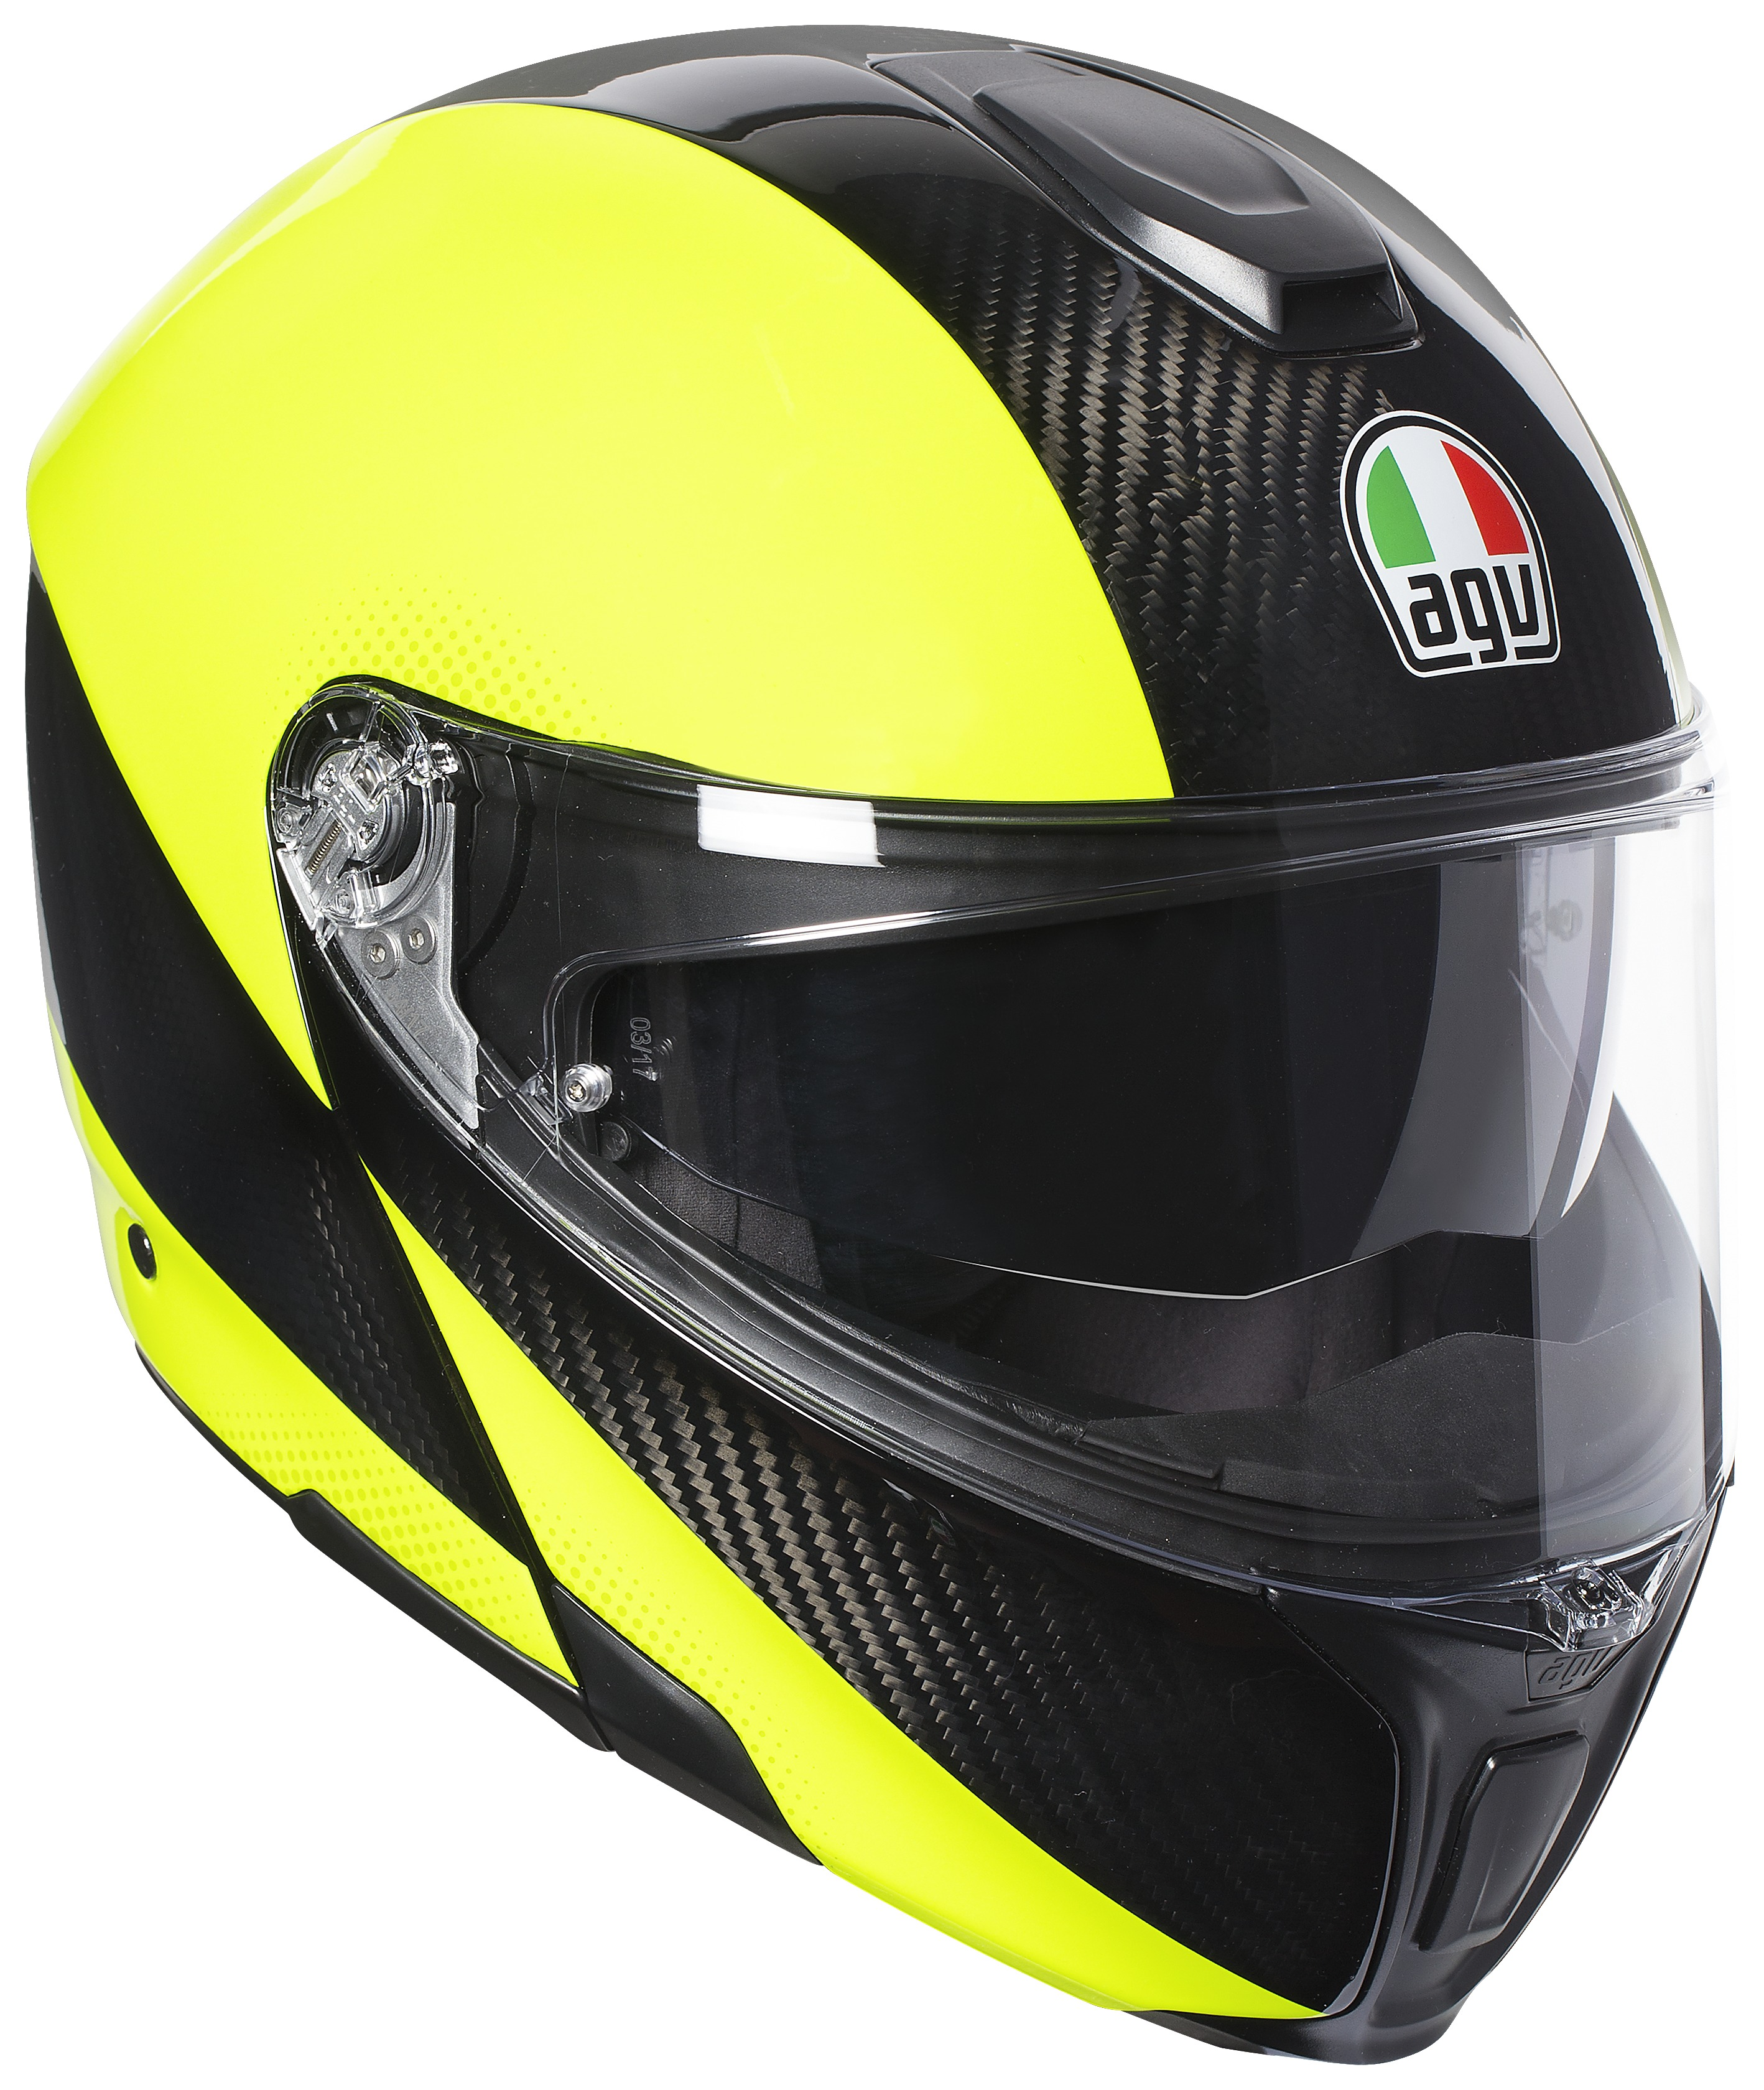 Helmet agv compact course black yellow fluo high visibility